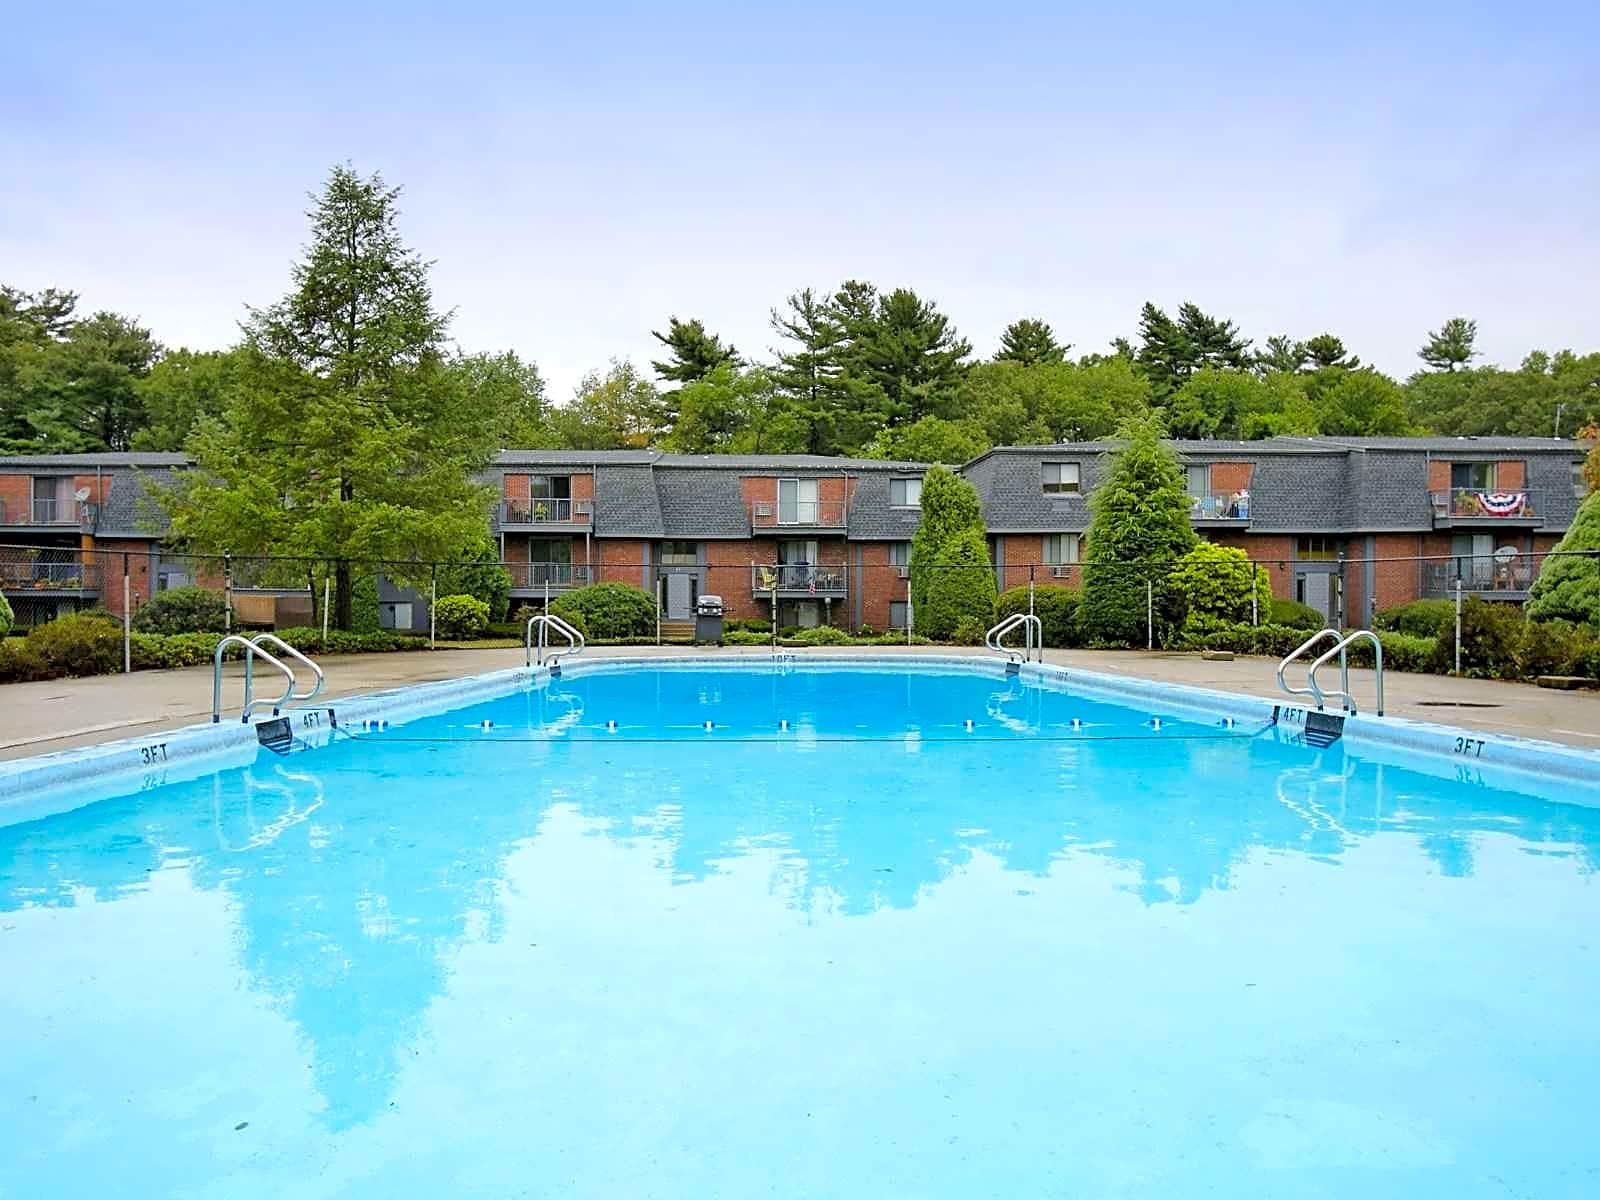 Apartments Near Dean Stoney Brook Village for Dean College Students in Franklin, MA